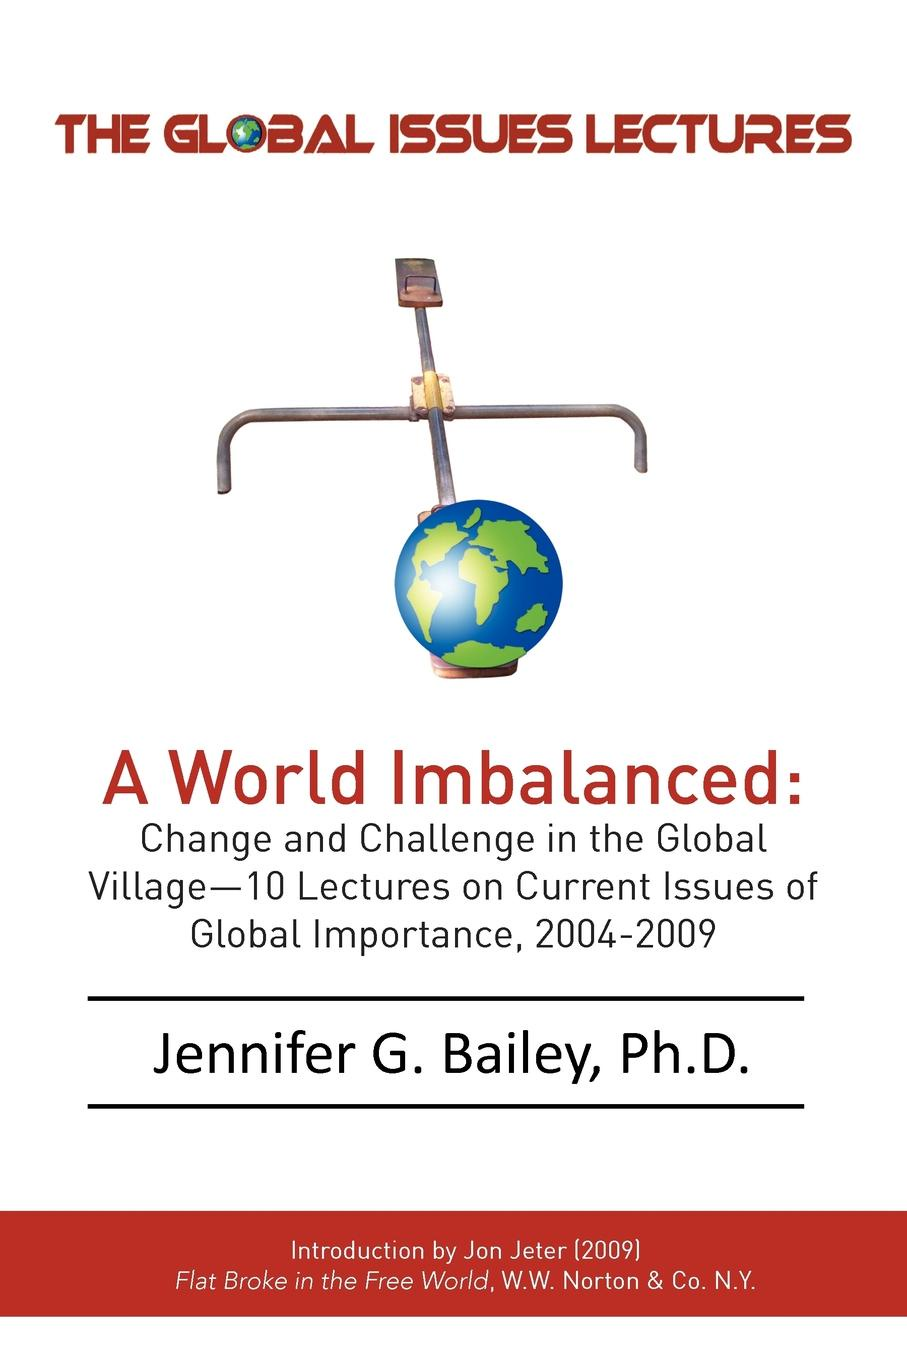 Jennifer G. Bailey The Global Issues Lectures frances harris global environmental issues